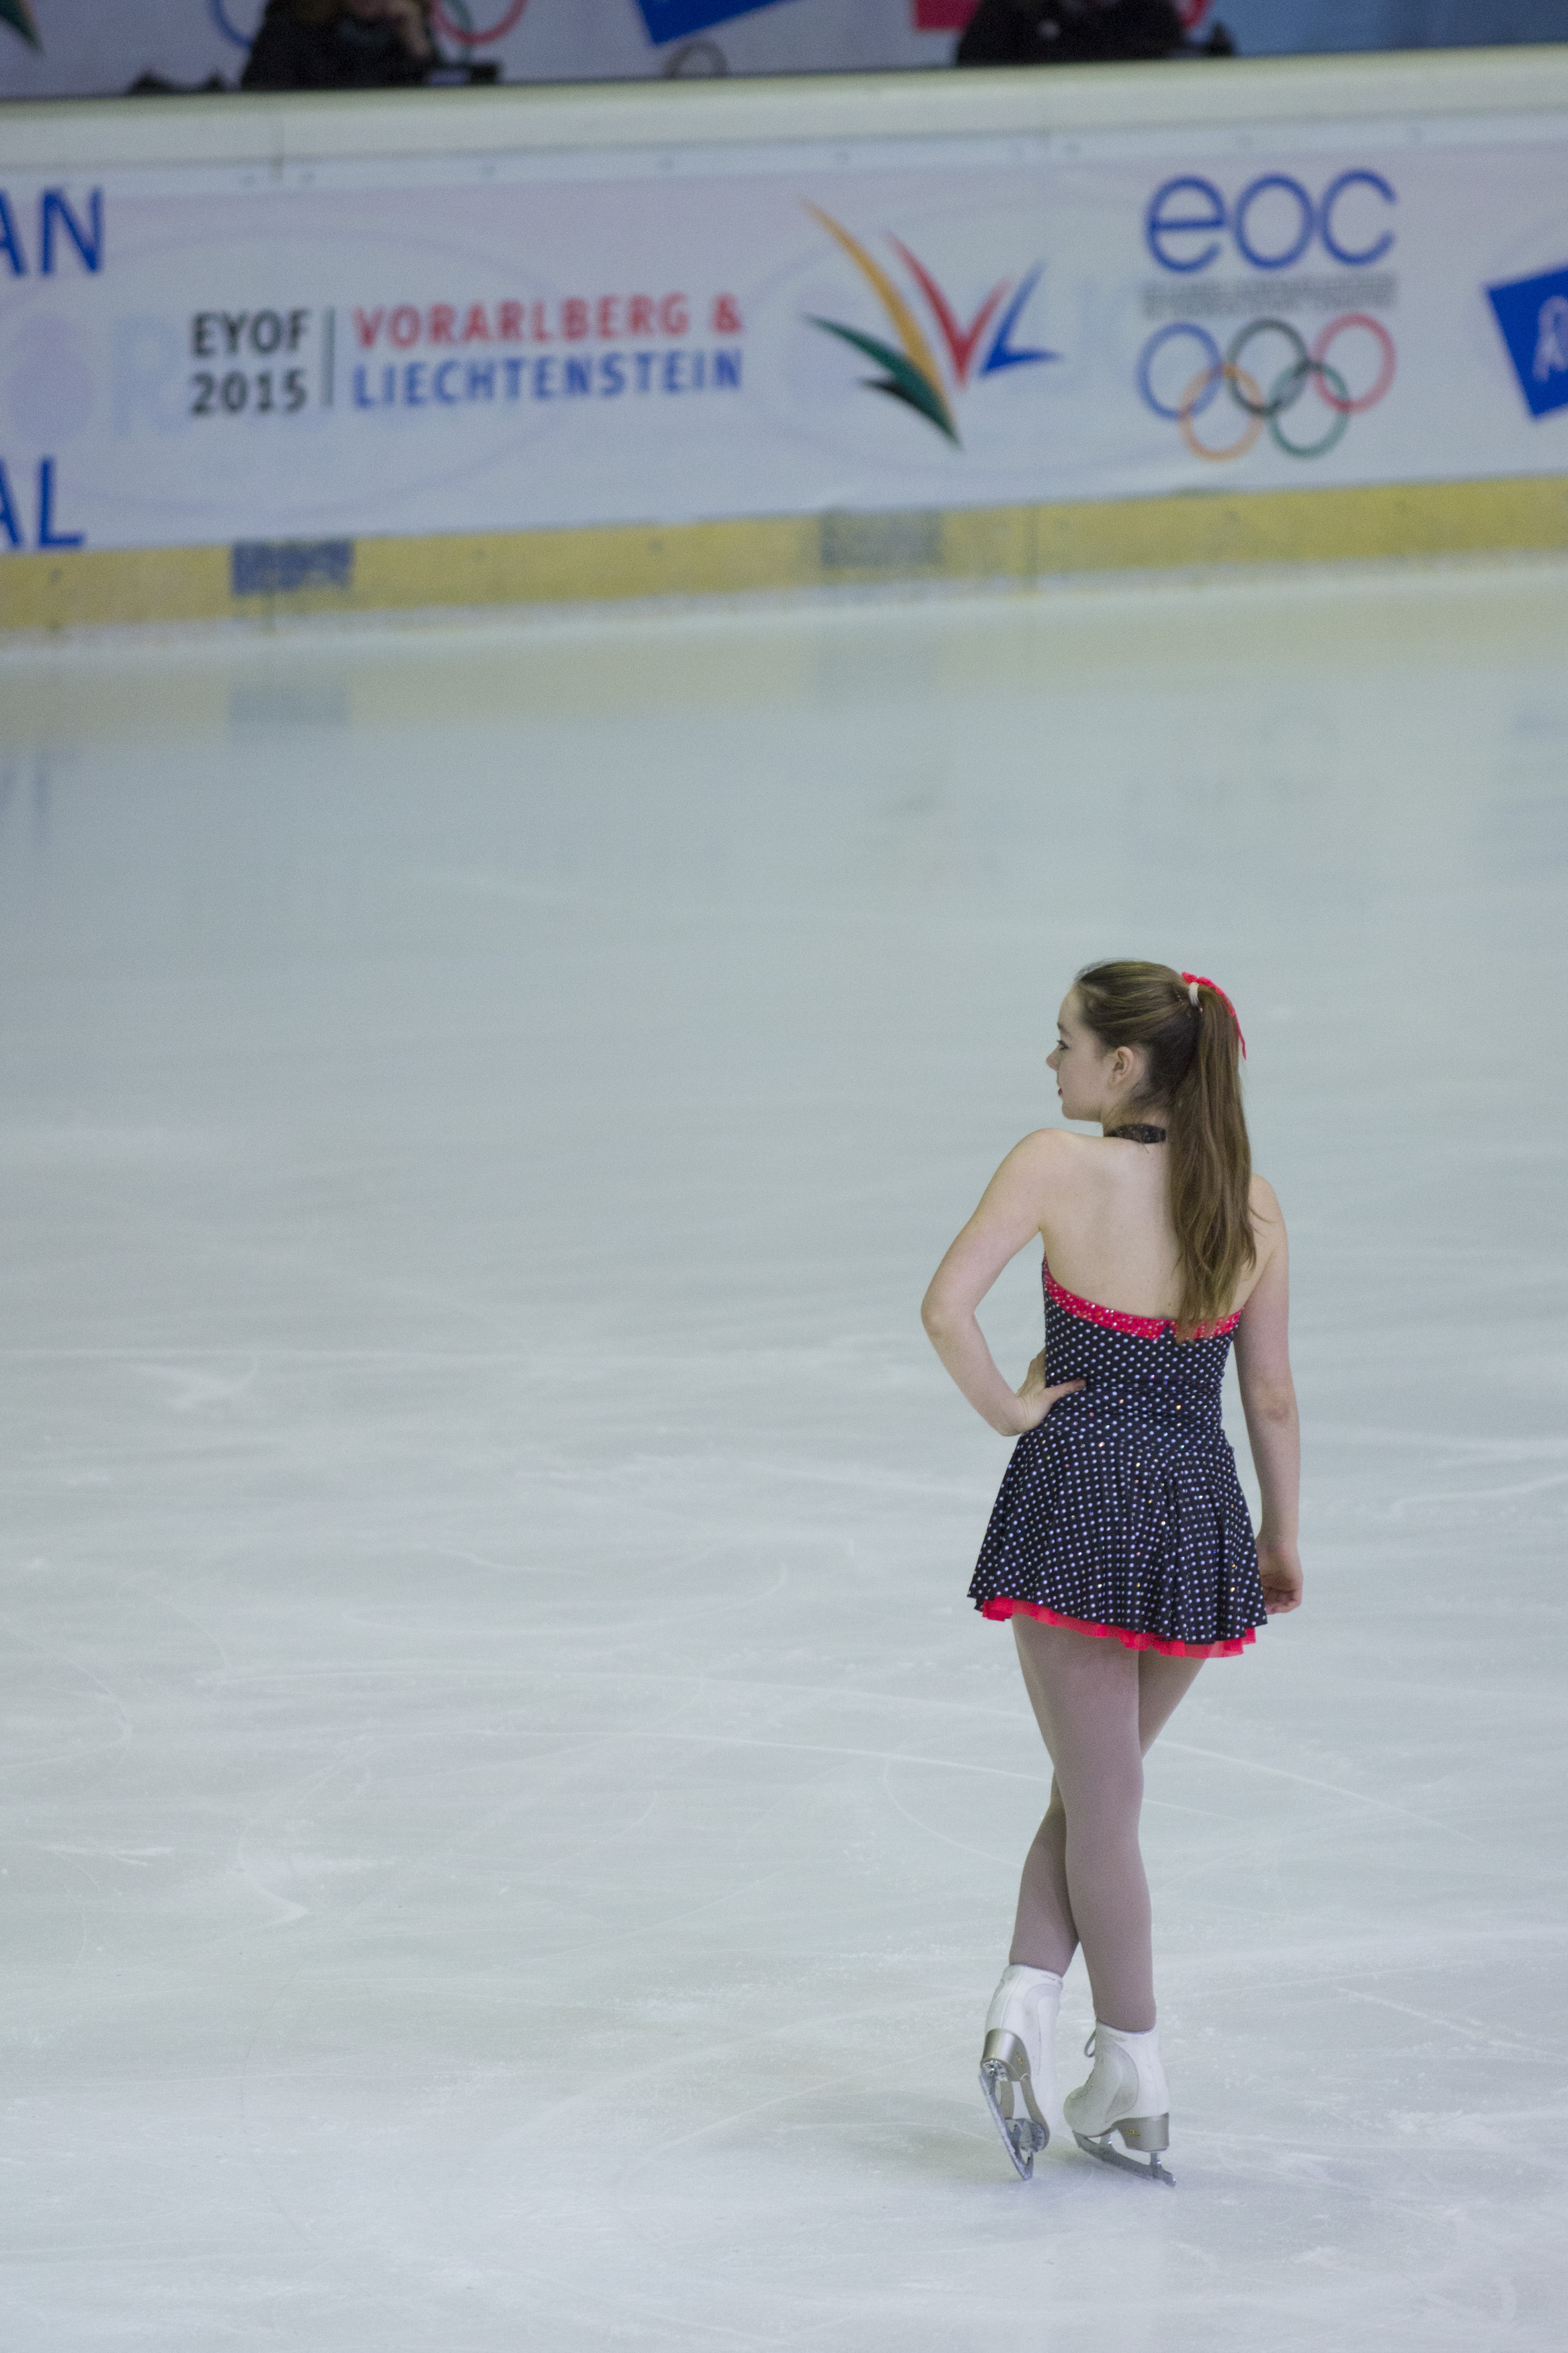 EYOF_20150126_DB_FigureSkating_GirlsShort_065.jpg